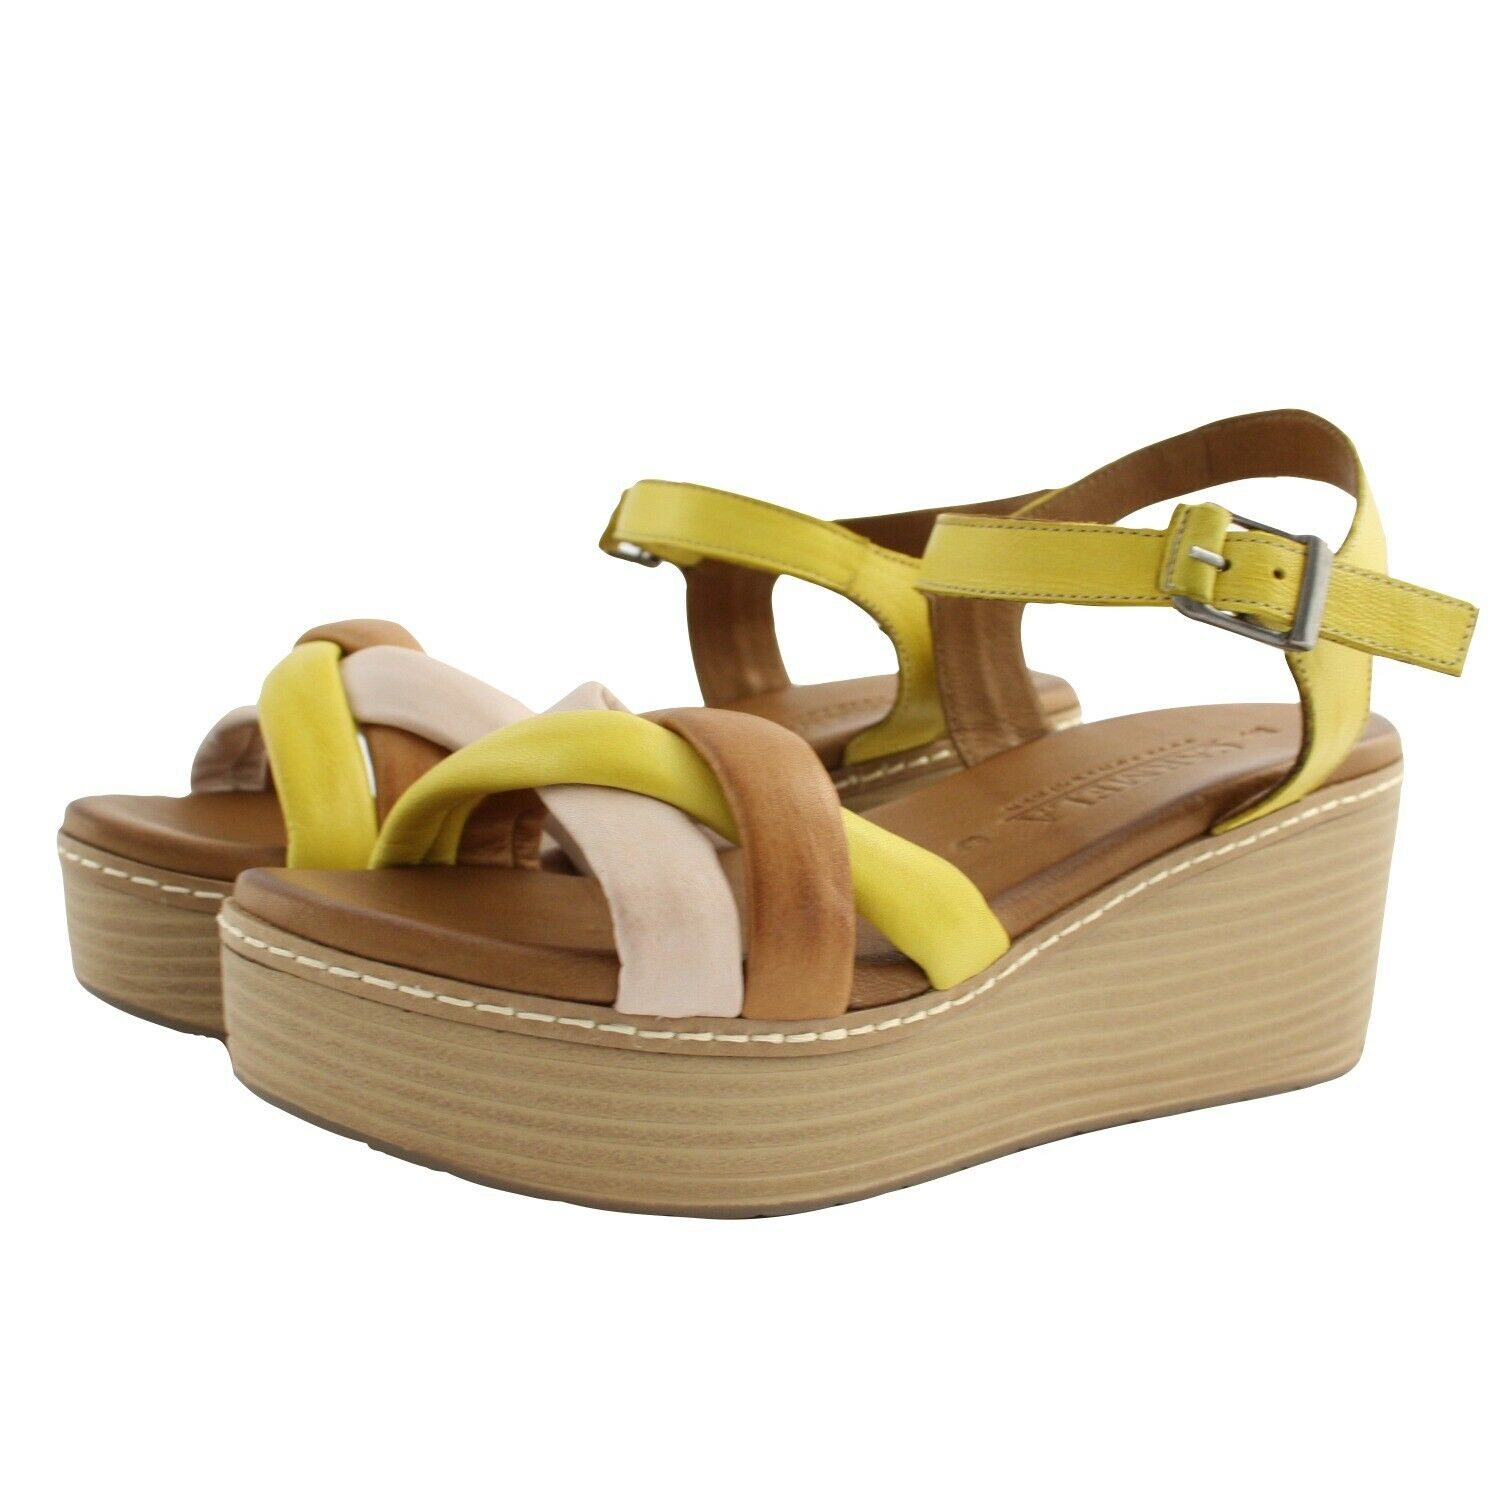 Shoes Sandals Summer Carmela Womens Brown Leather Yellow Leather Wedge Comfortable